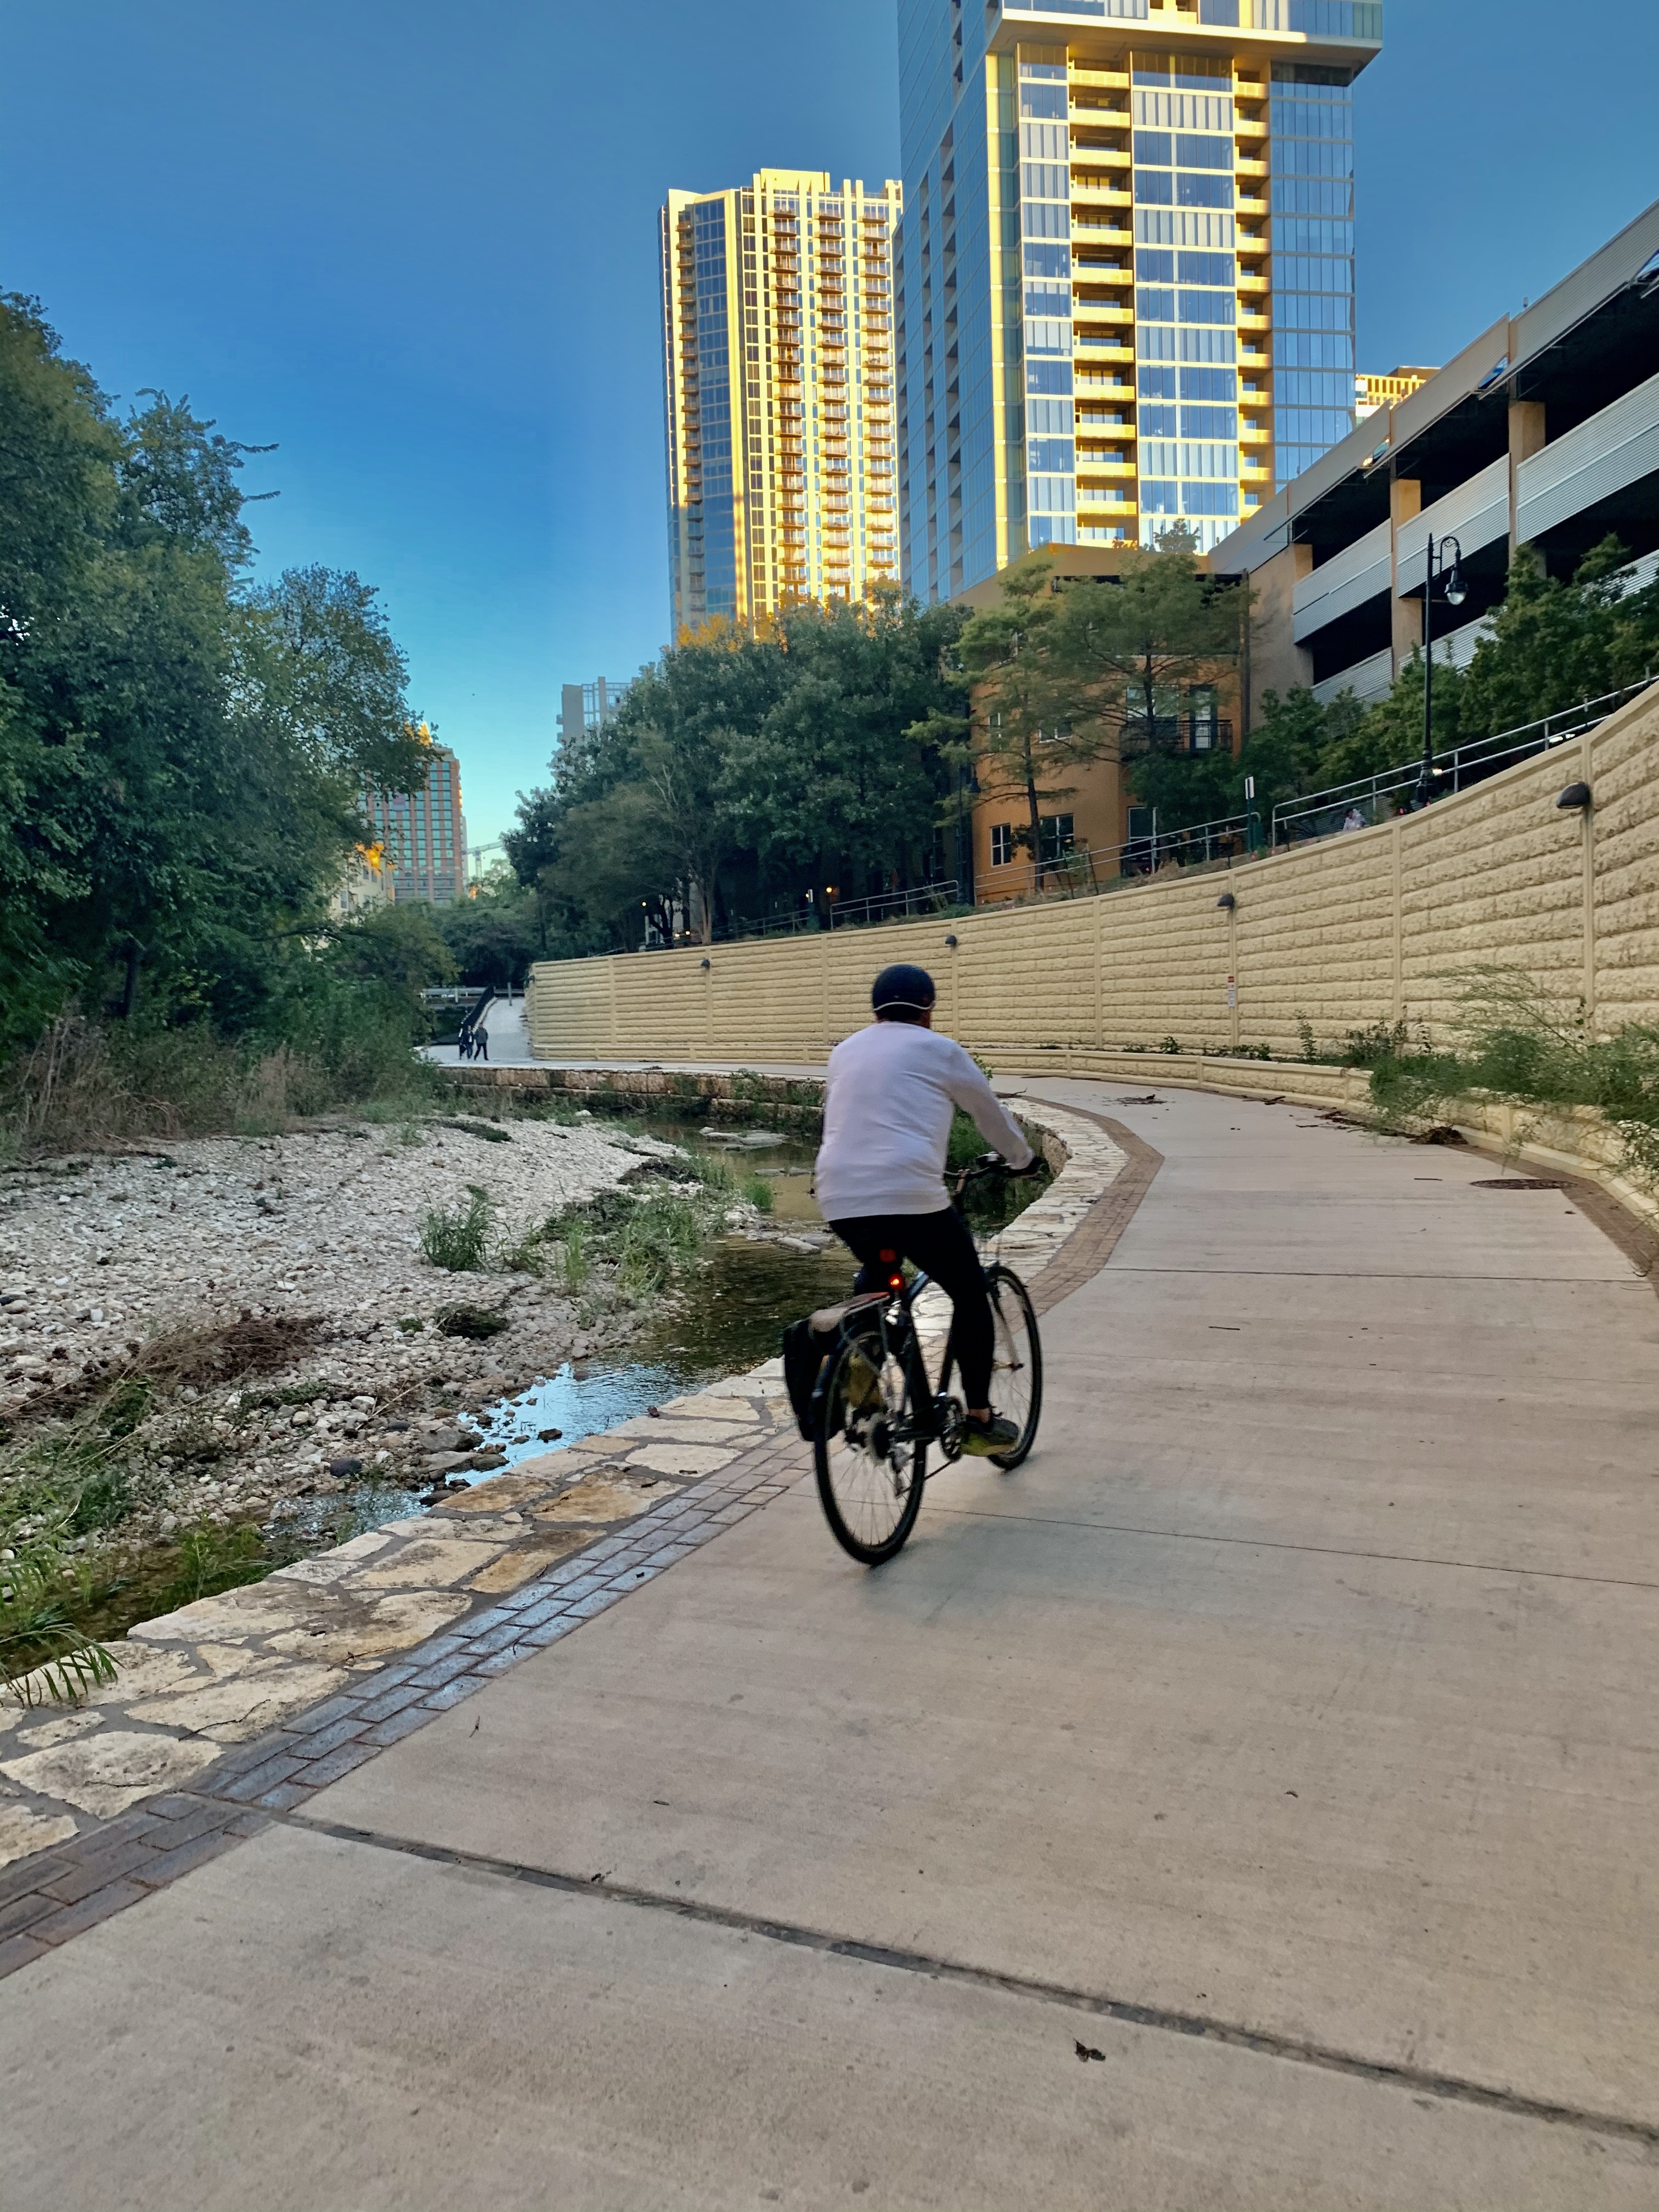 A man biking on the trail. (September 2019)